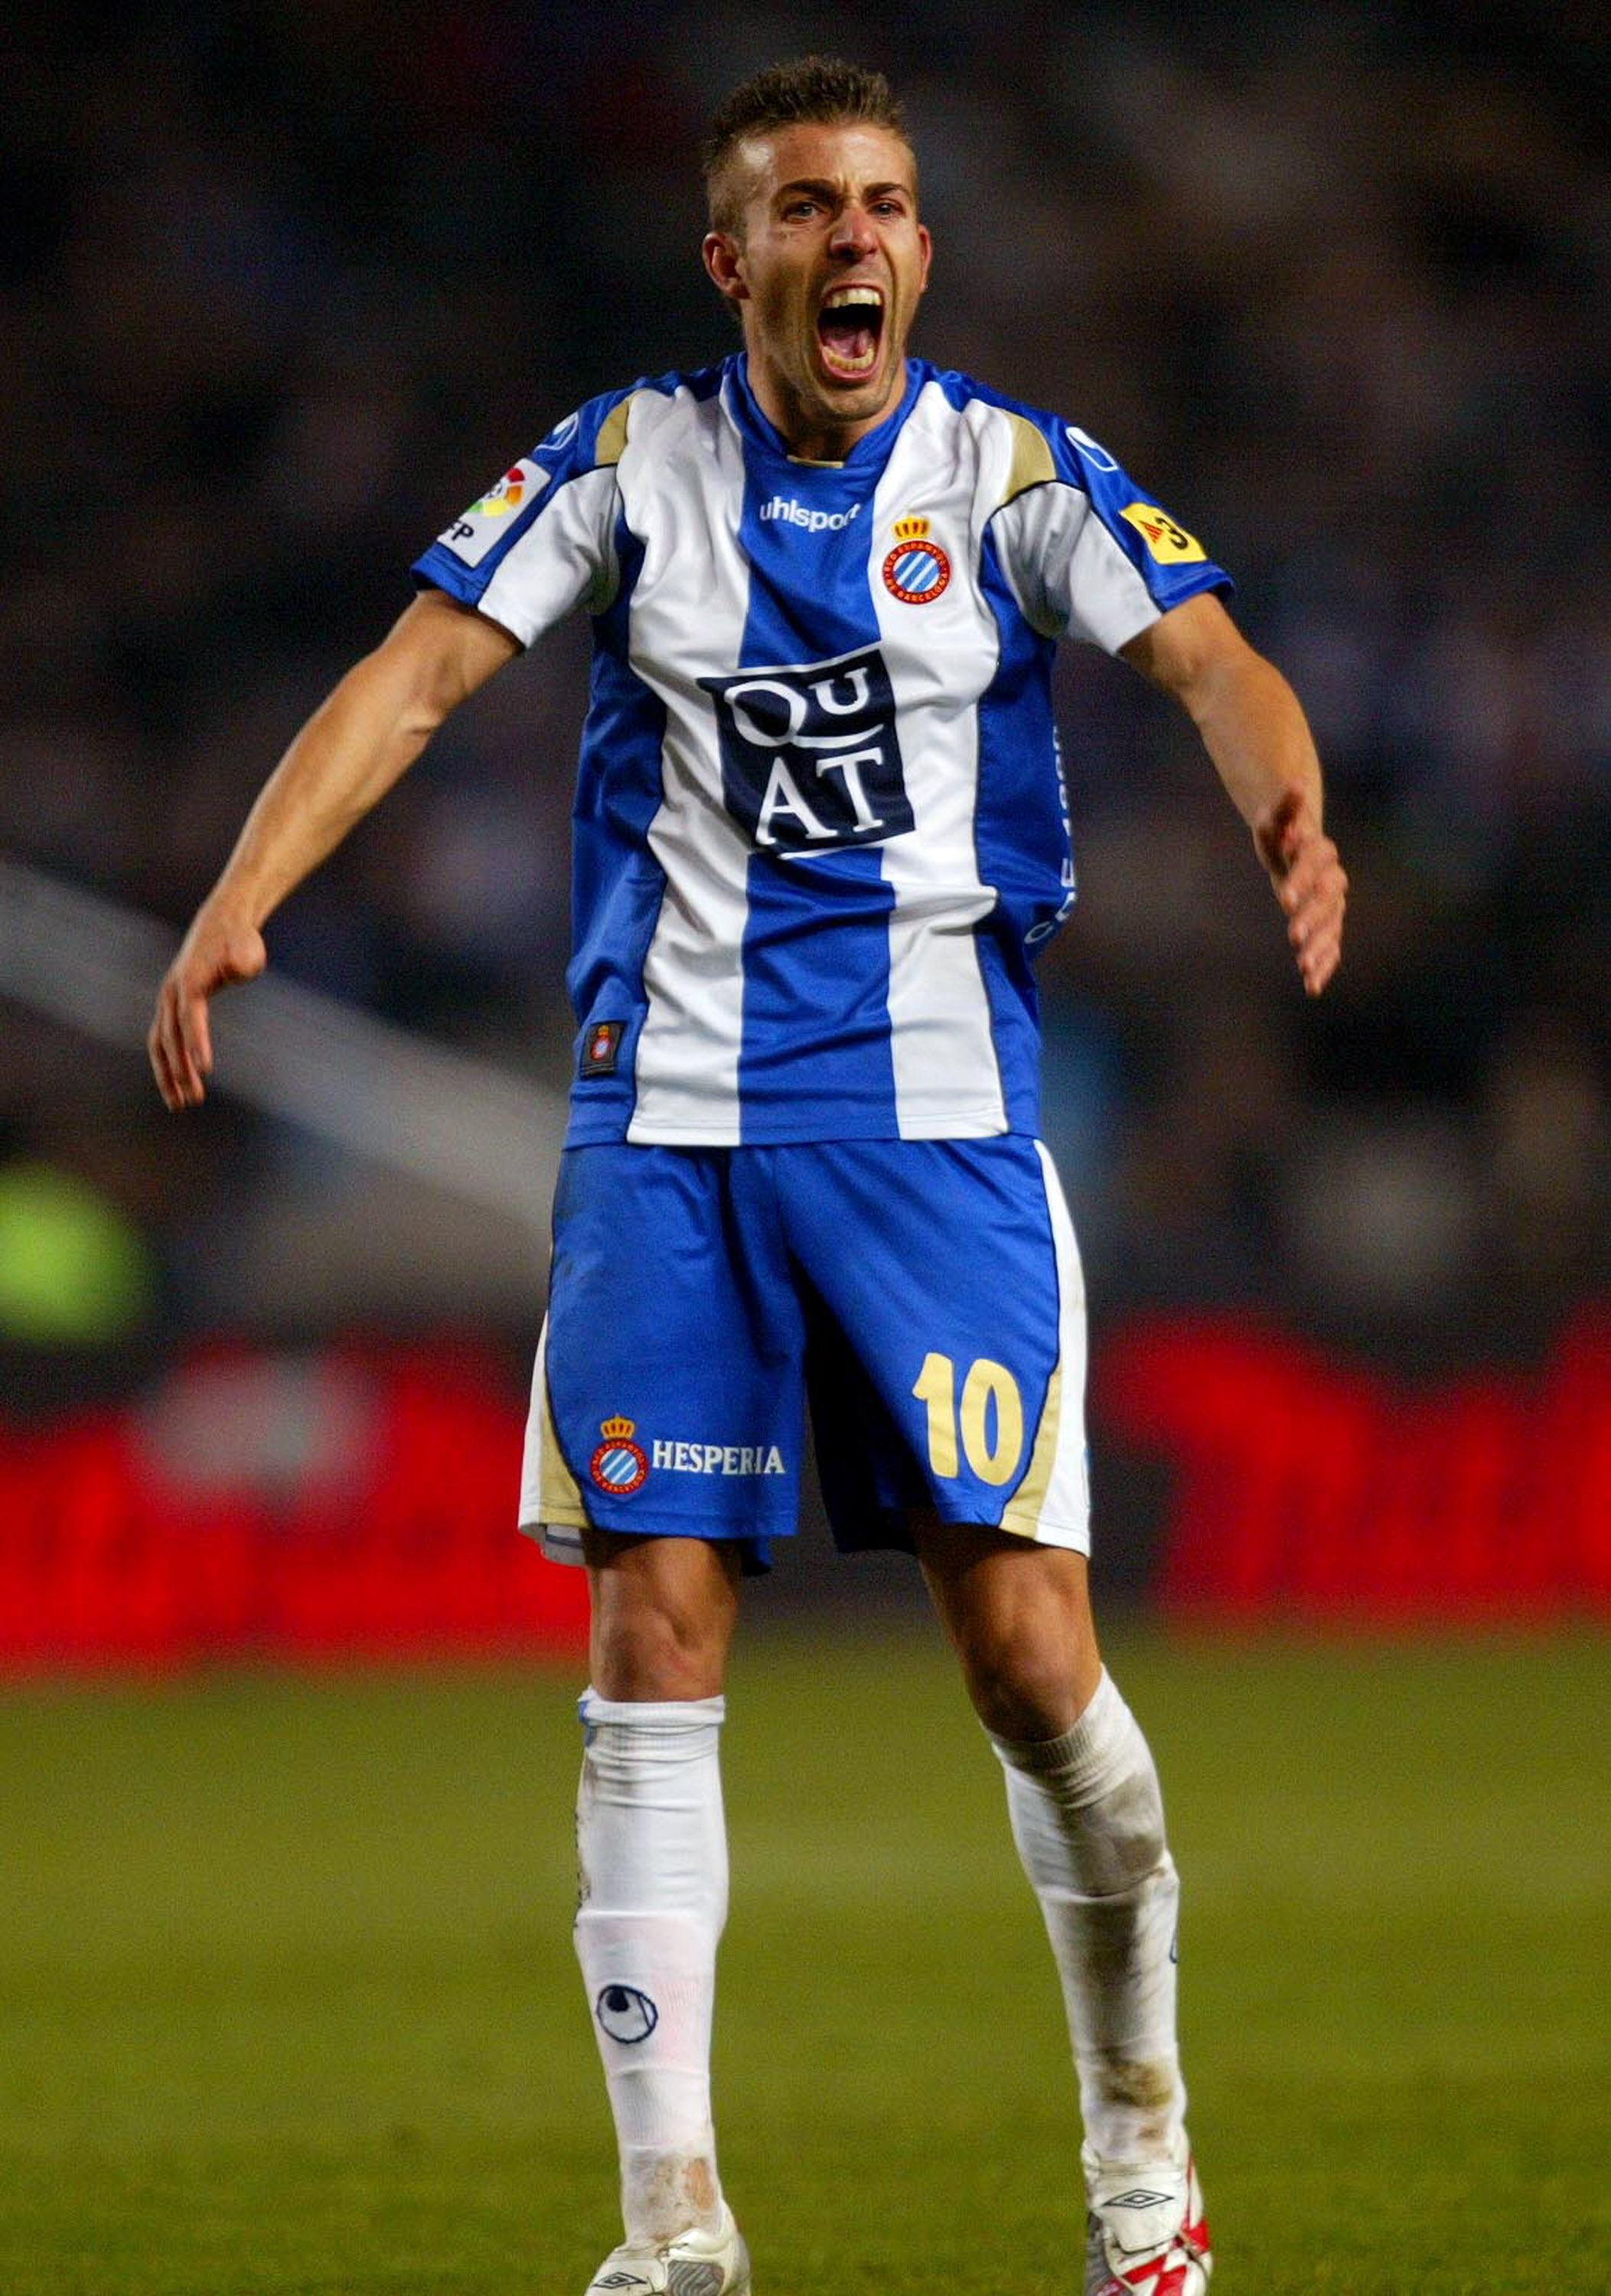 BARCELONA, SPAIN - DECEMBER 1: Luis Garcia of Espanyol reacts during the La Liga match between RCD Espanyol and FC Barcelona, played at the Lluis Companys stadium on December 1, 2007 in Barcelona, Spain (Photo by Bagu Blanco/Getty Images).